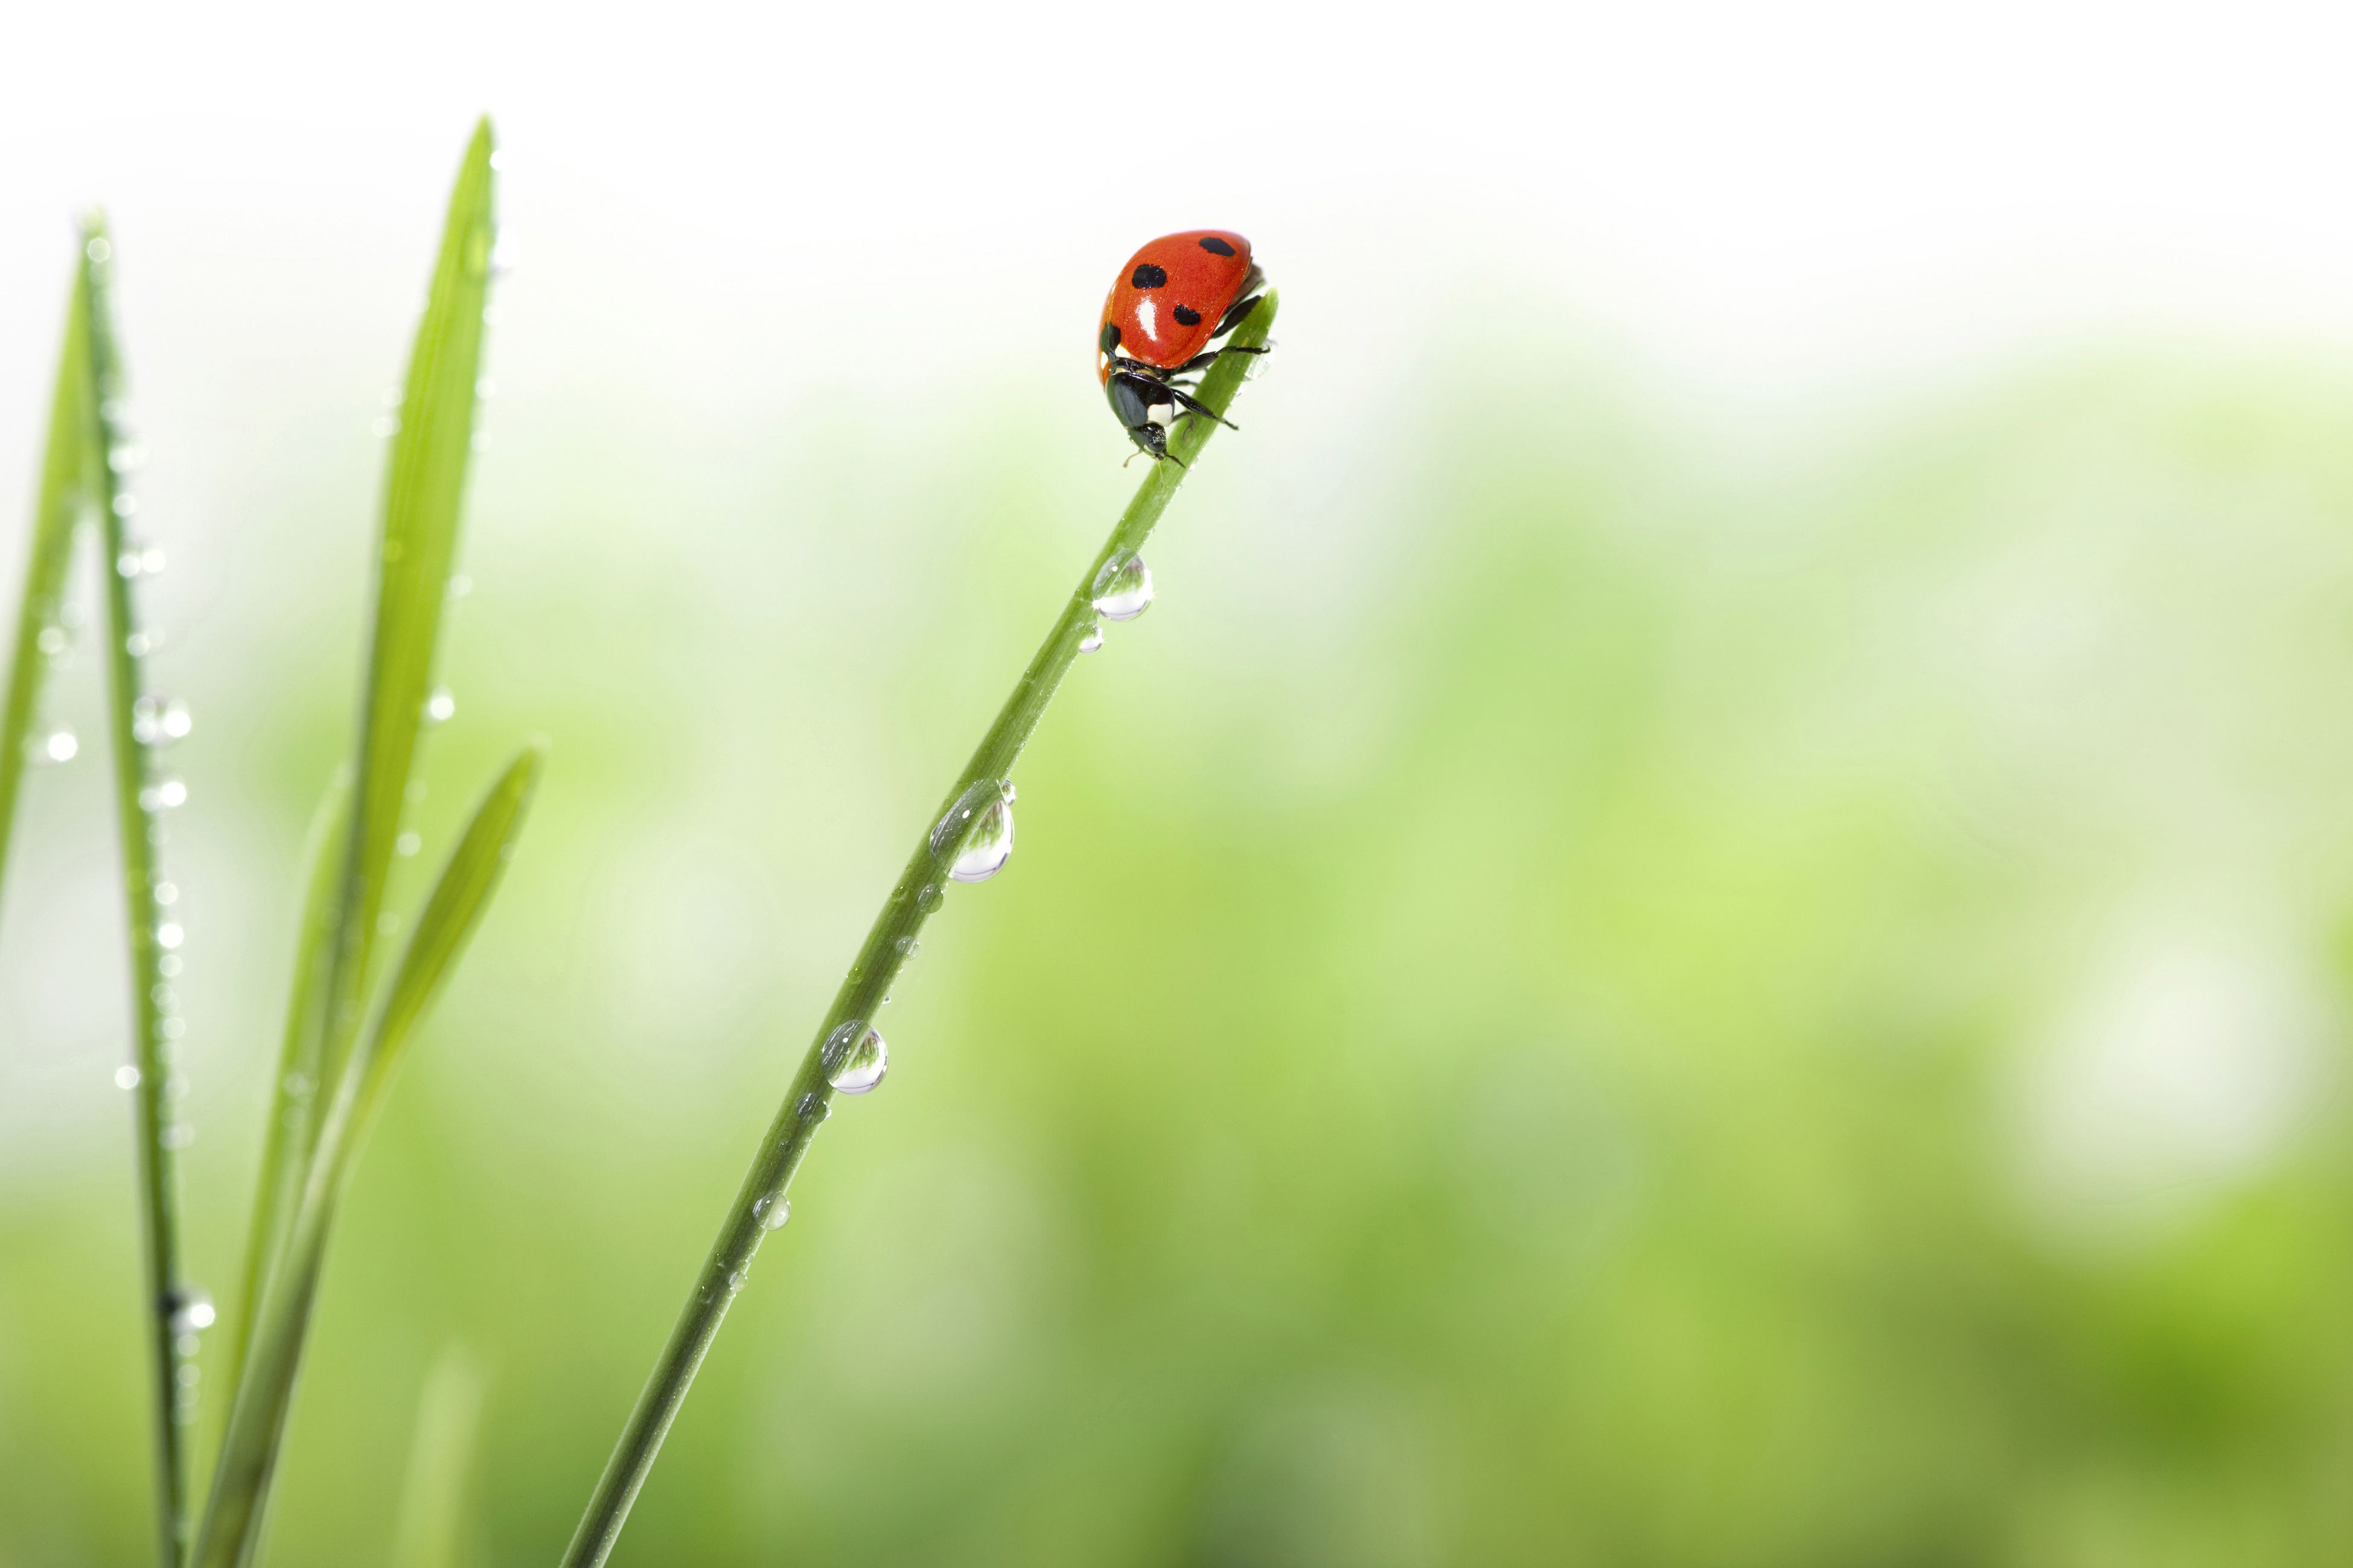 should i purchase ladybugs to release in my garden